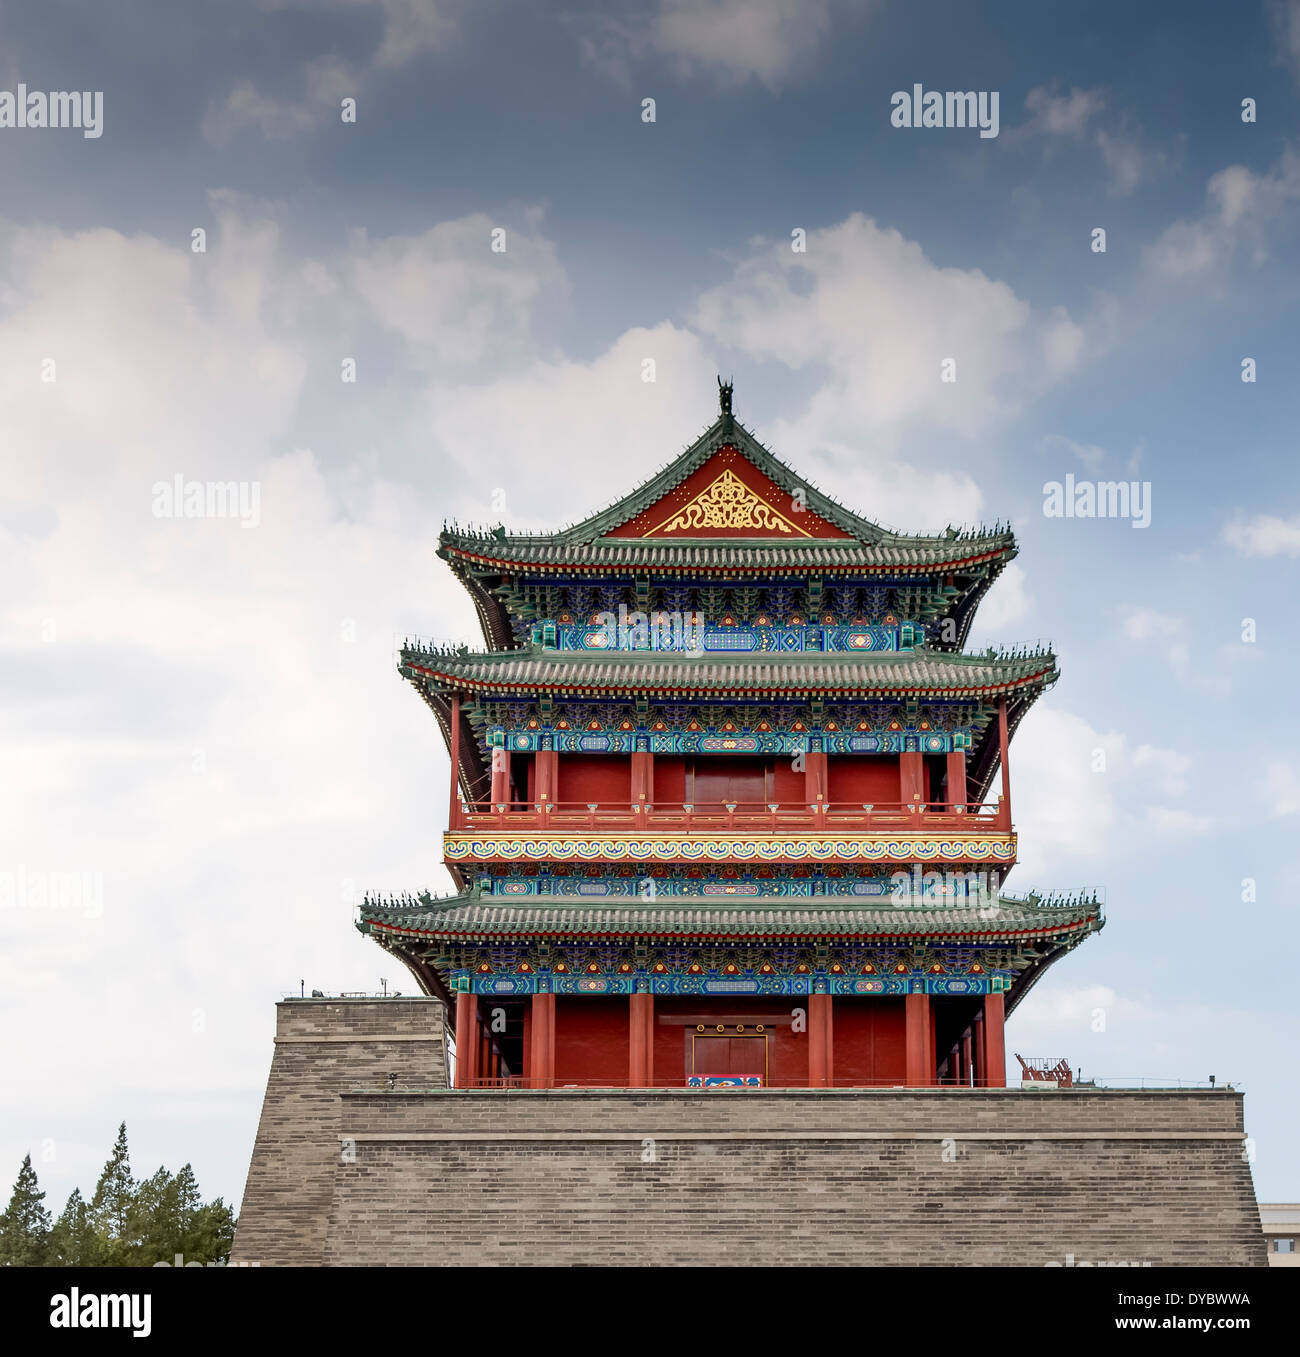 ASIA Beijing CHINA Chinese architecture Front Gate Tiananmen Square Beijing China - Stock Image